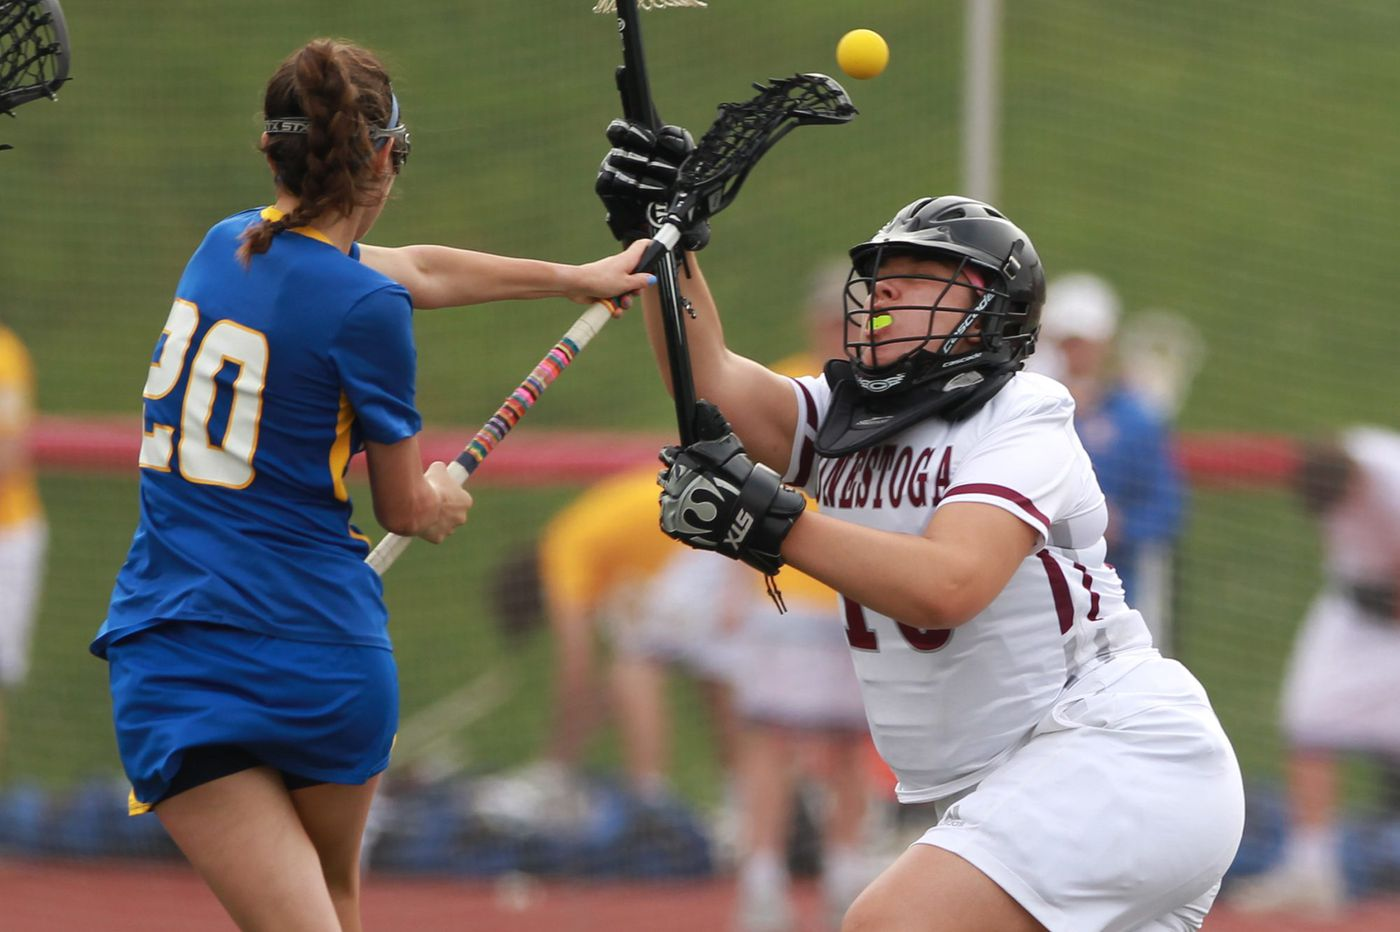 Saturday's Pa. roundup: Springfield (D) girls' lacrosse advances in PIAA playoffs behind clutch goal